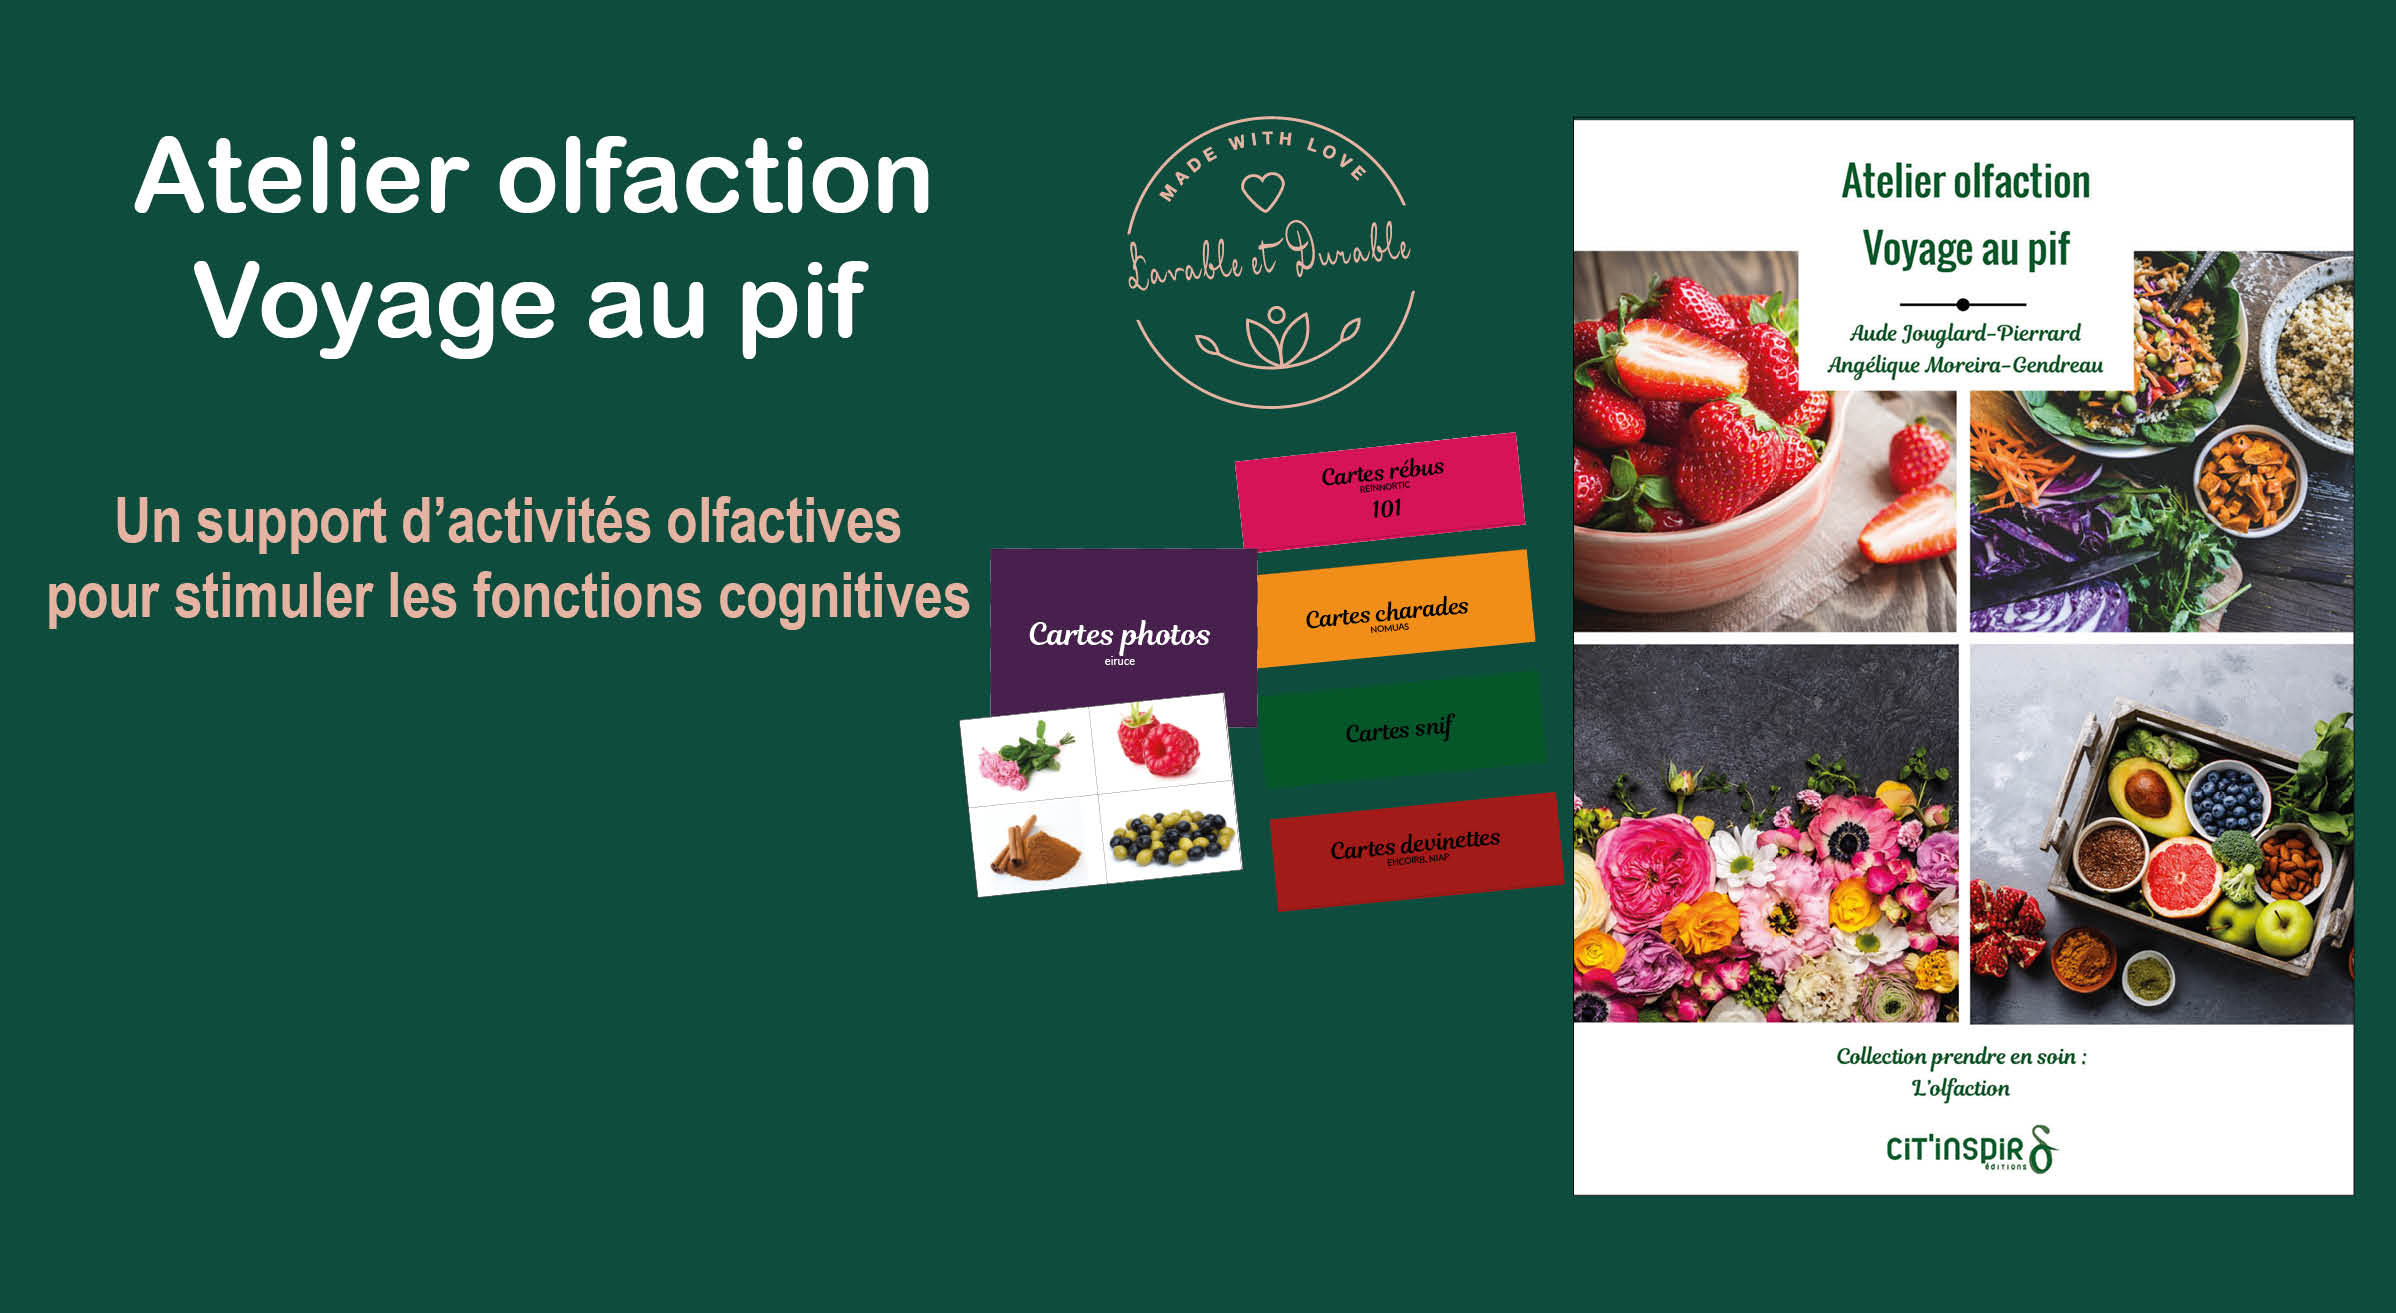 Atelier olfaction